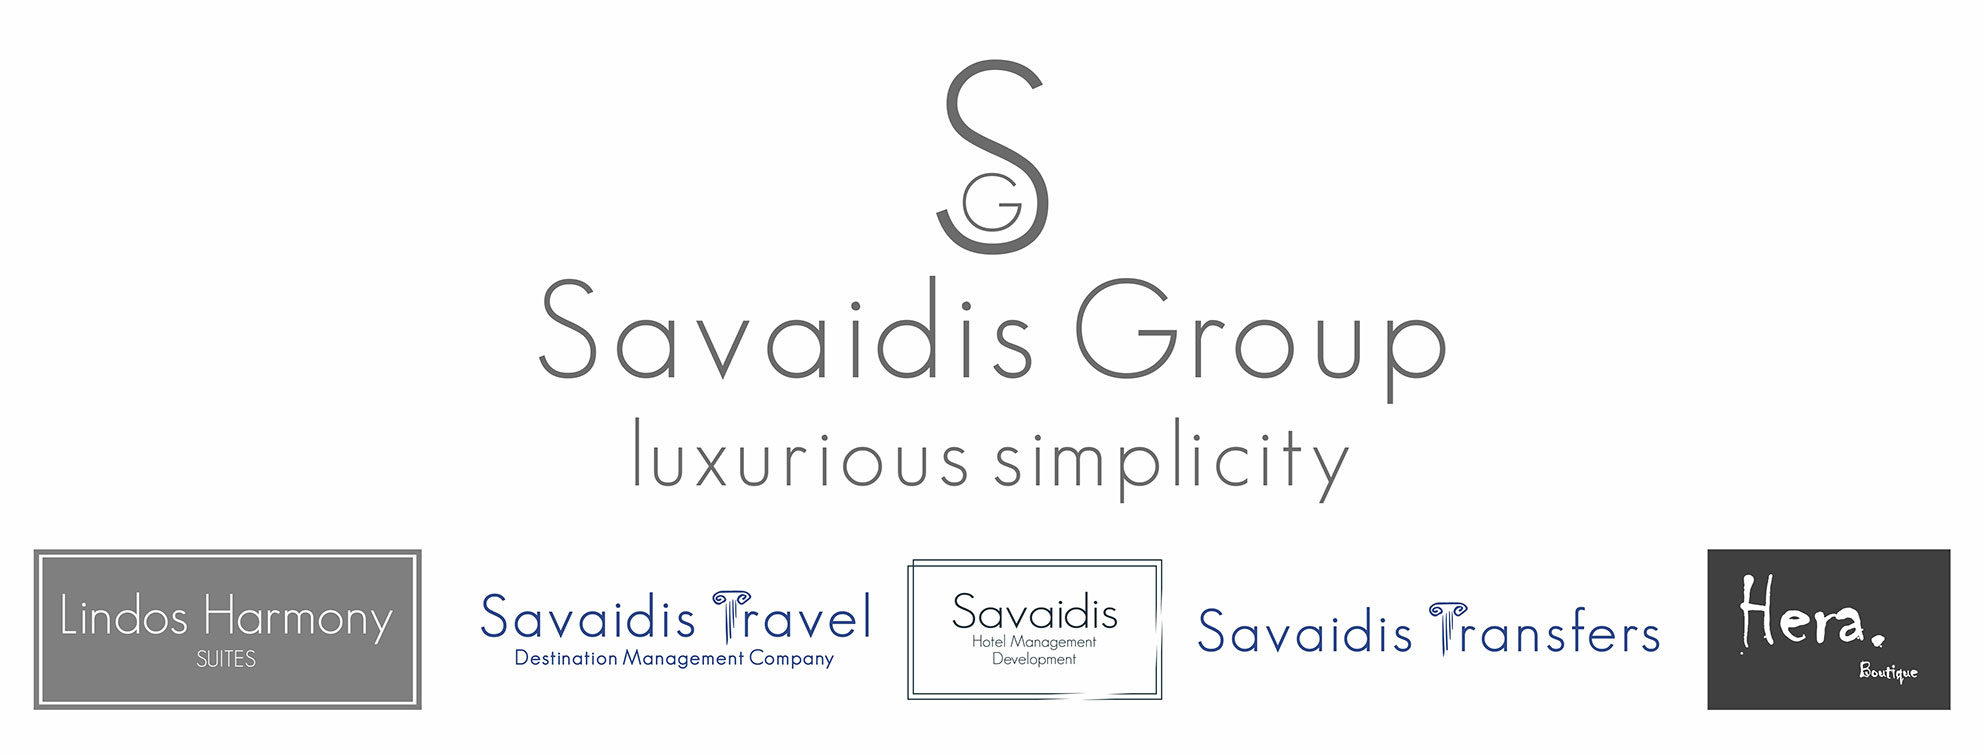 Savaidis Group Logos